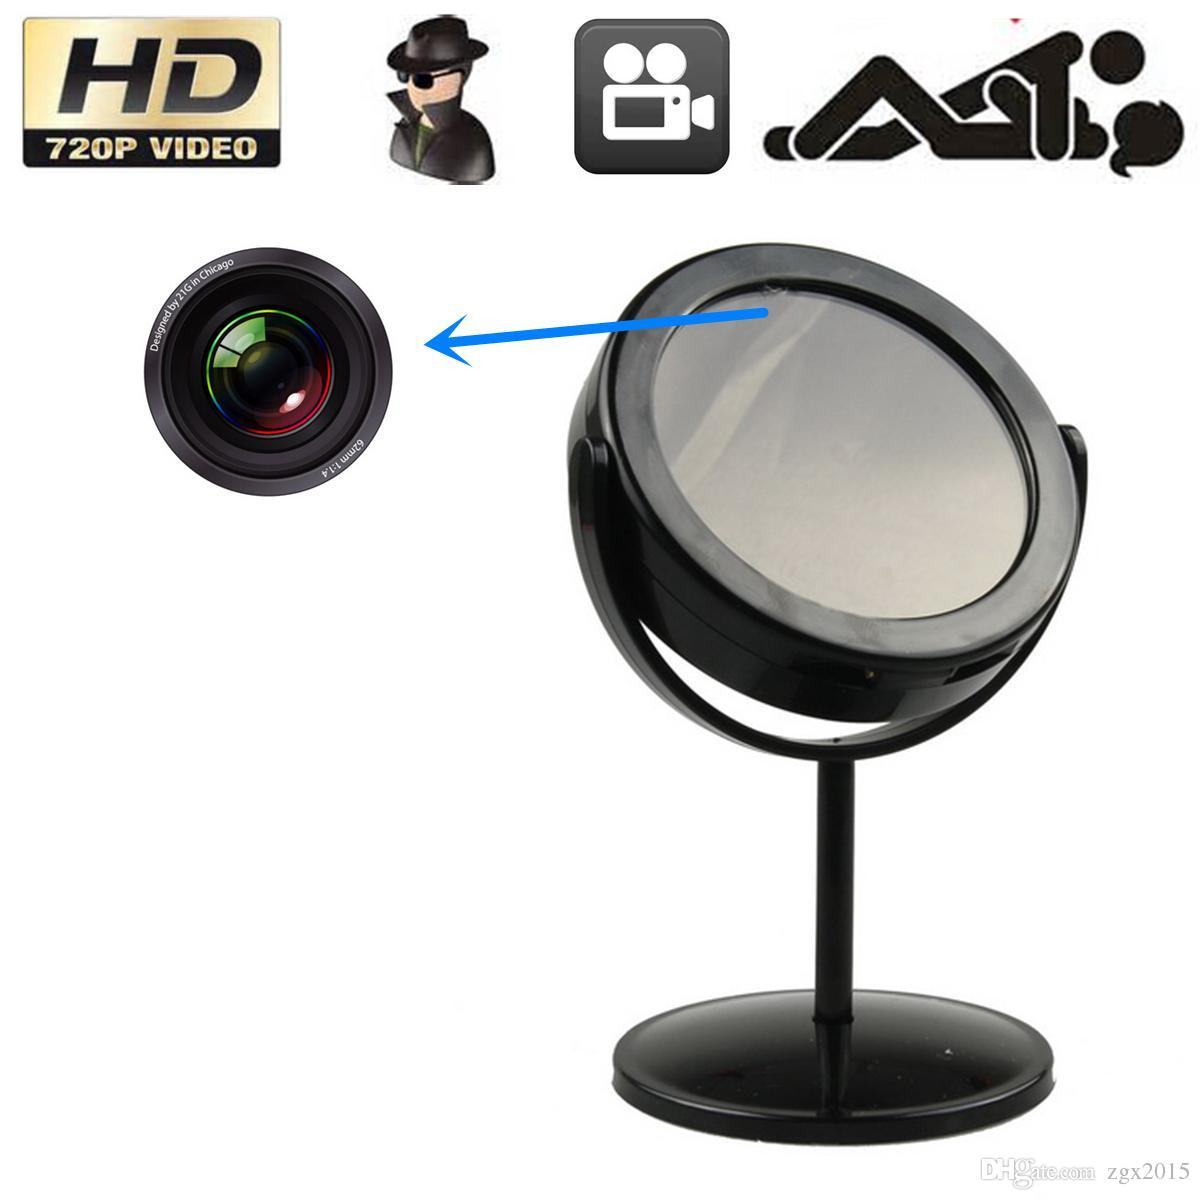 Home mirror spy hidden camera video recorder motion for Mirror video